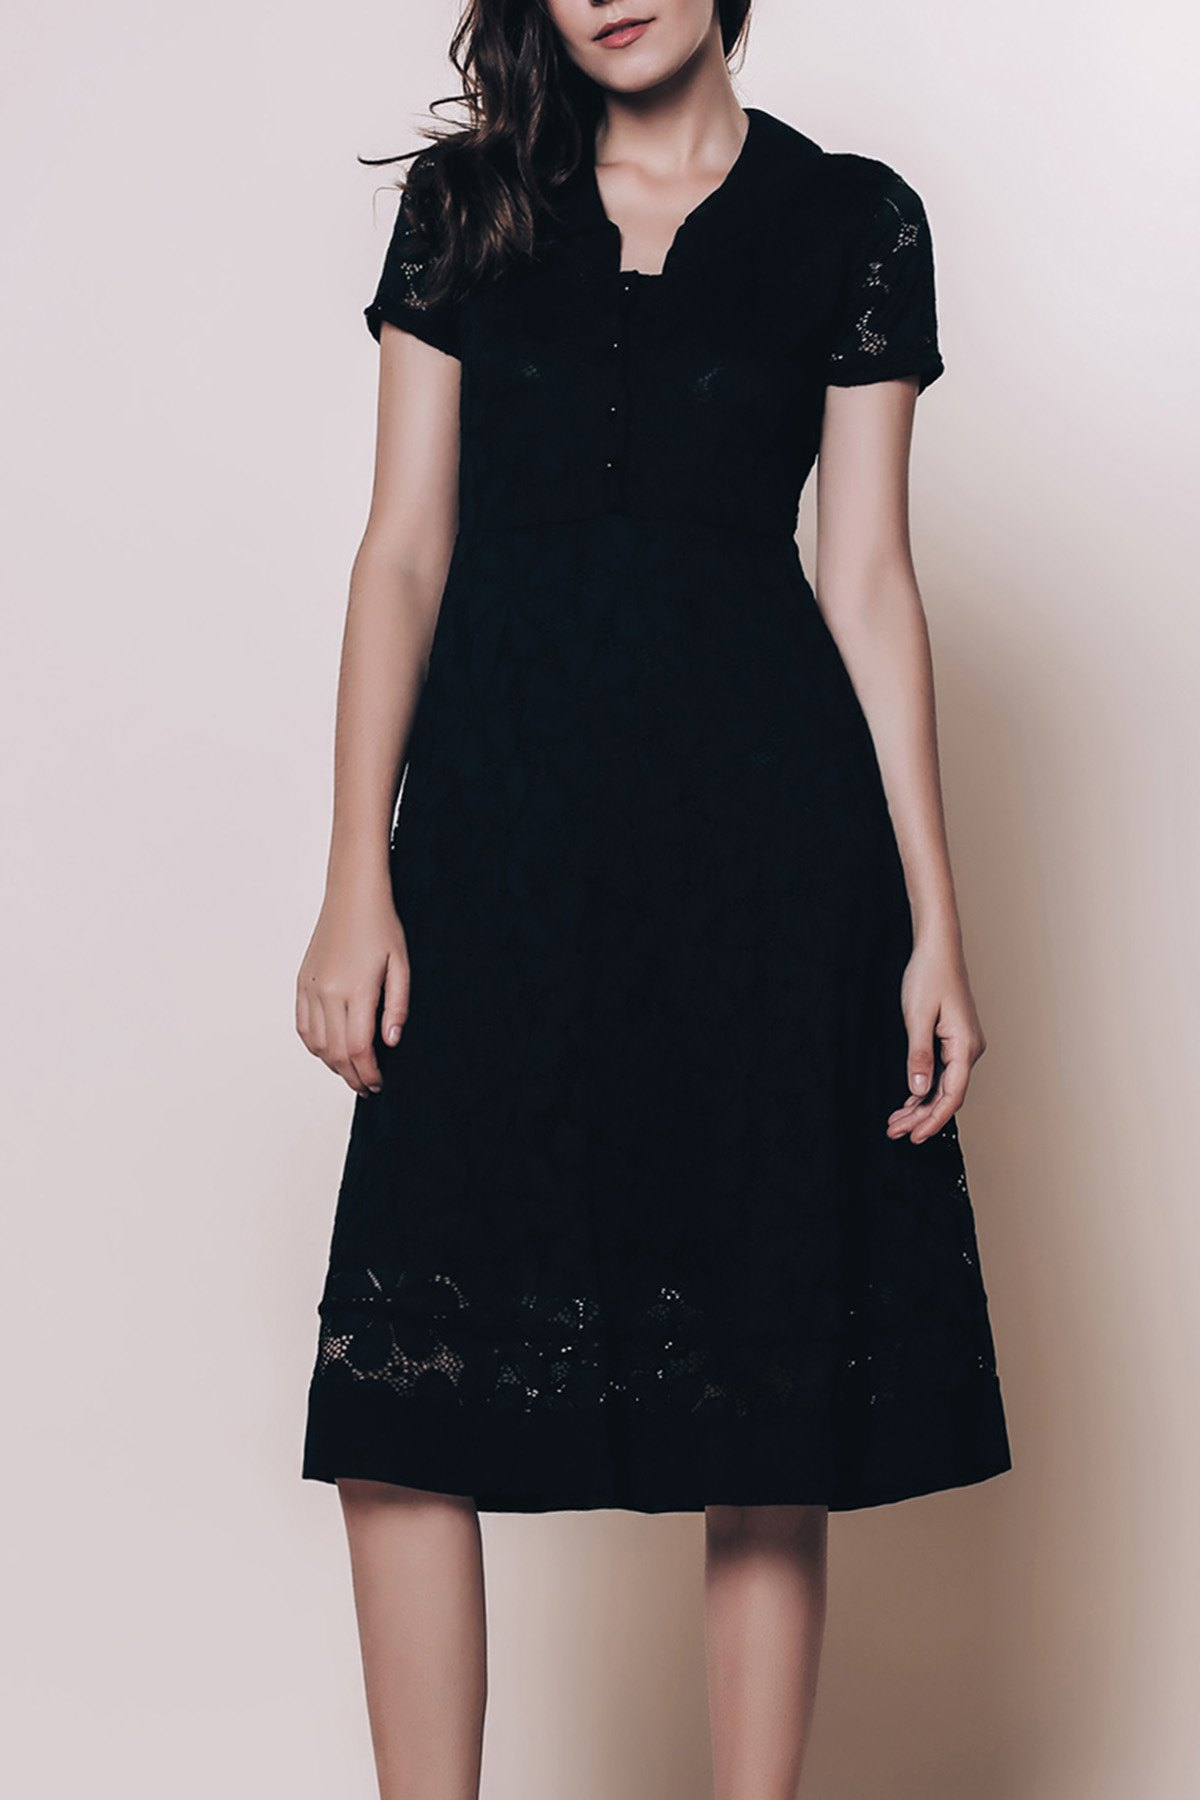 Vintage Style Short Sleeve V-Neck Lace Women's Black Dress - BLACK M